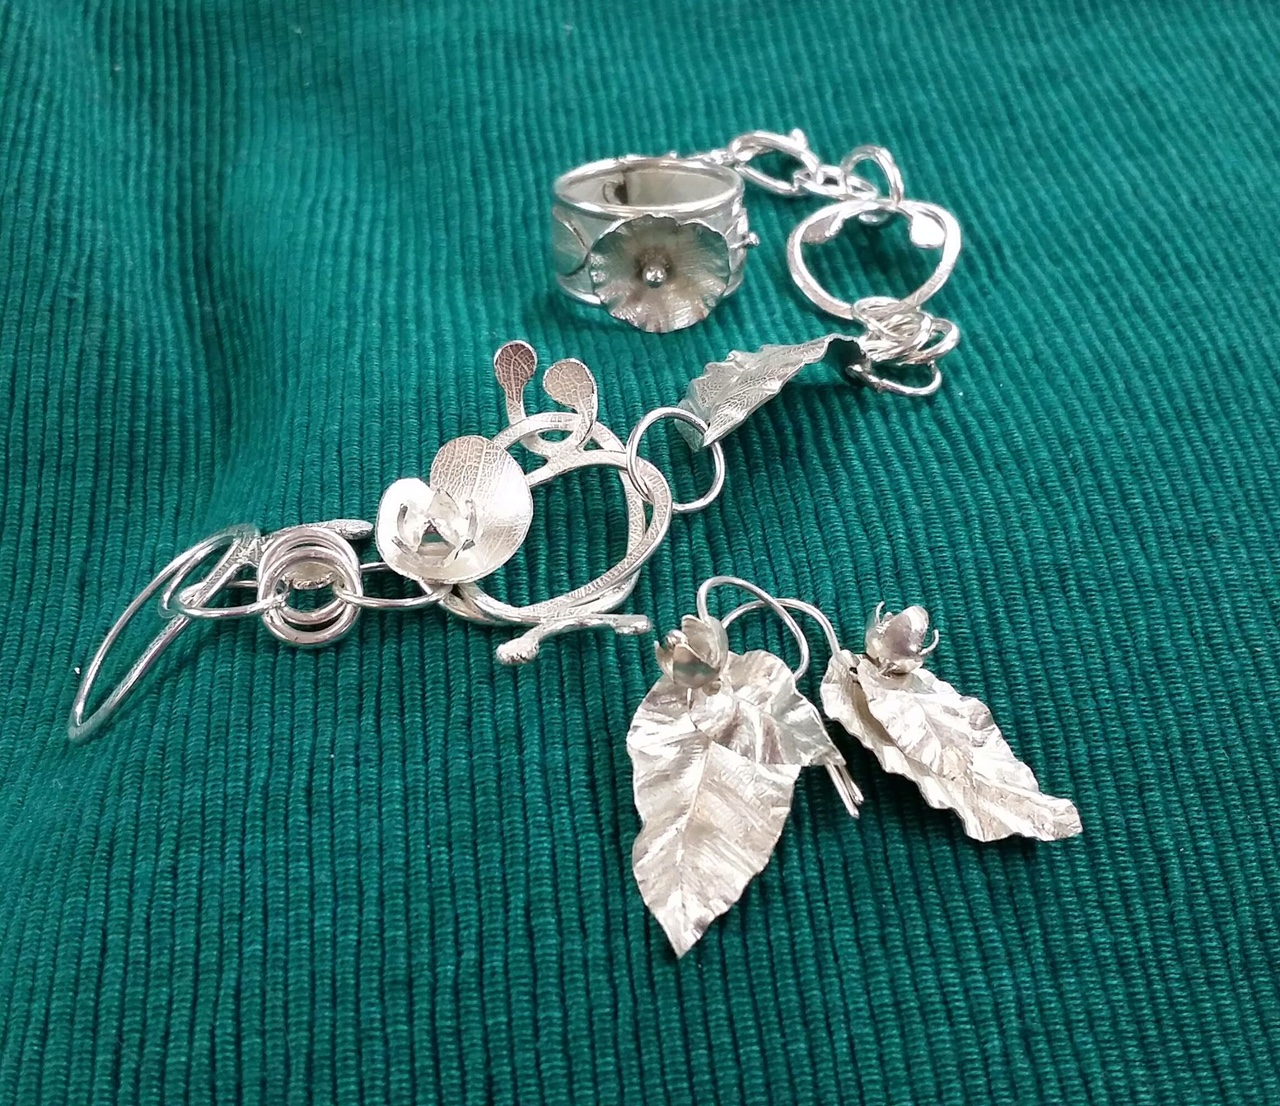 Siver Jewellery for Beginners Course